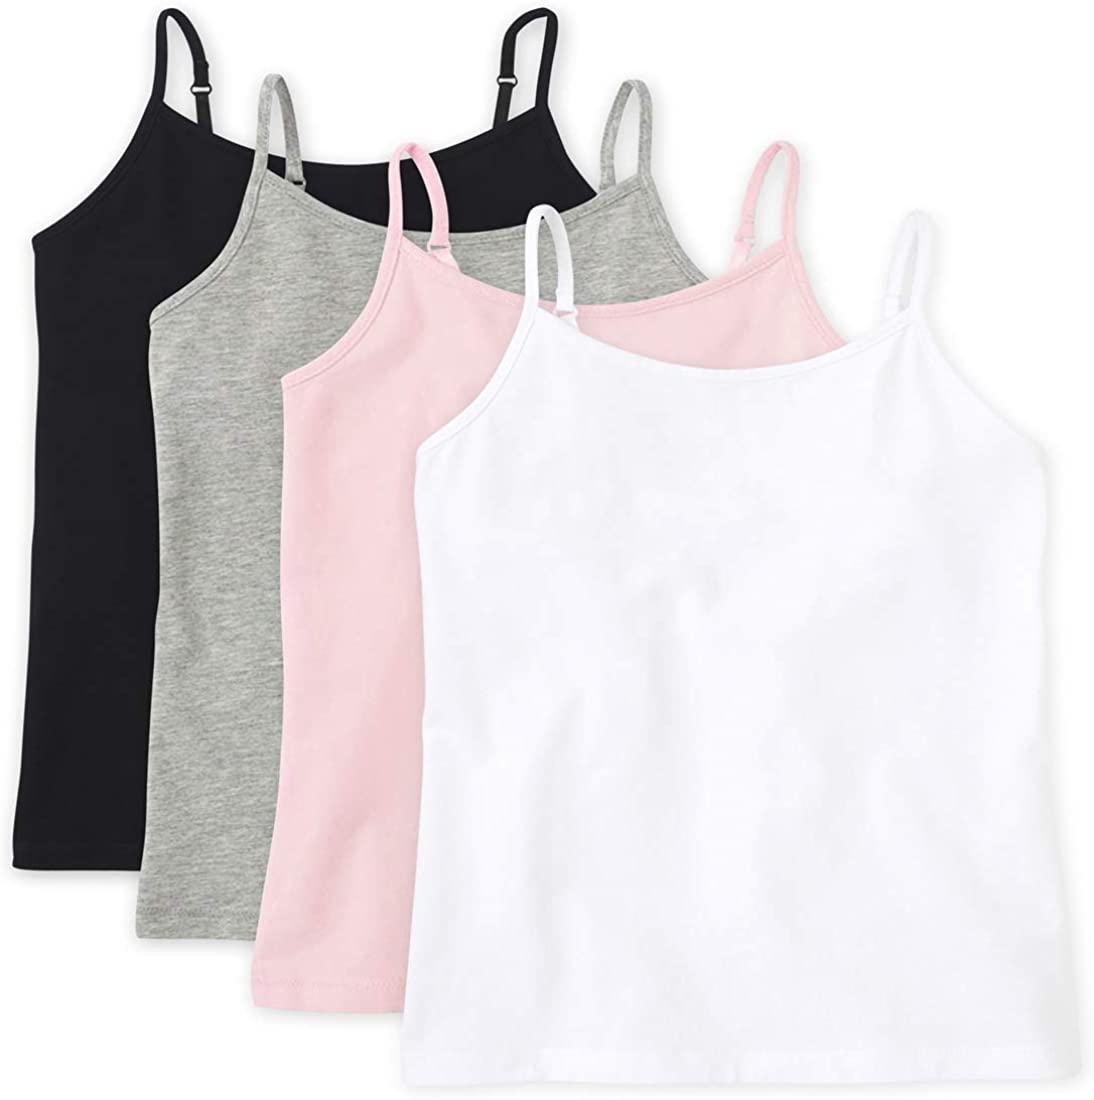 The Children's Place Girls' Basic Cami